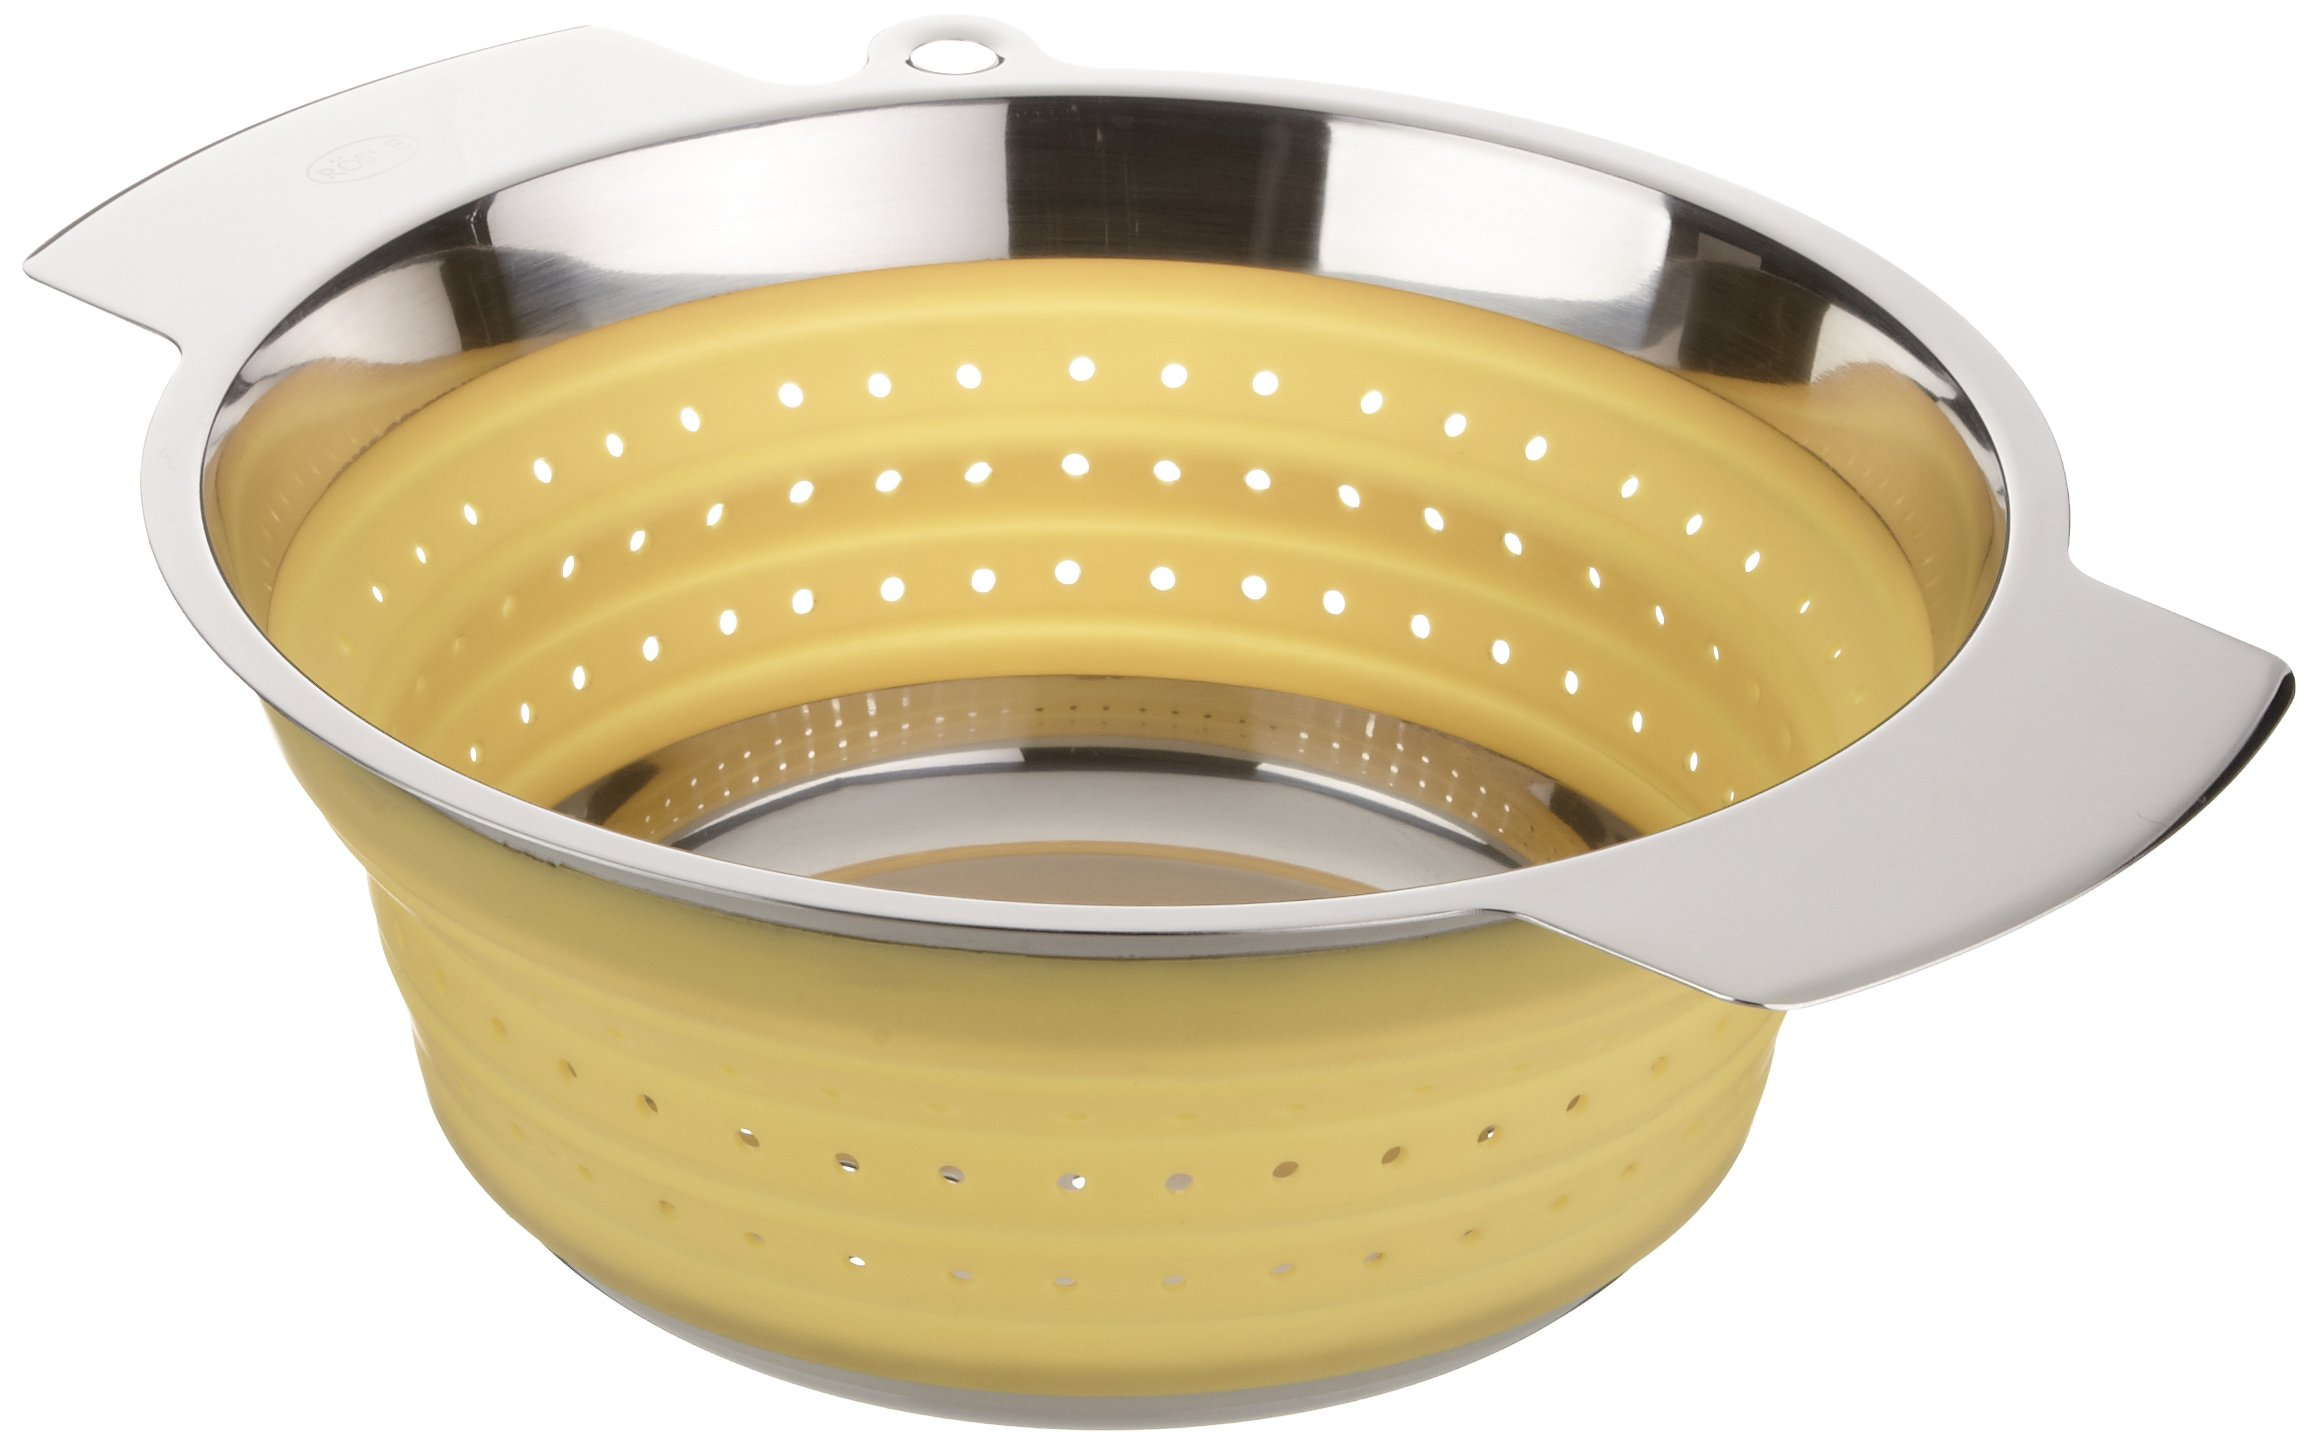 Rösle Stainless Steel 10-inch Collapsible Colander, Yellow by Rosle